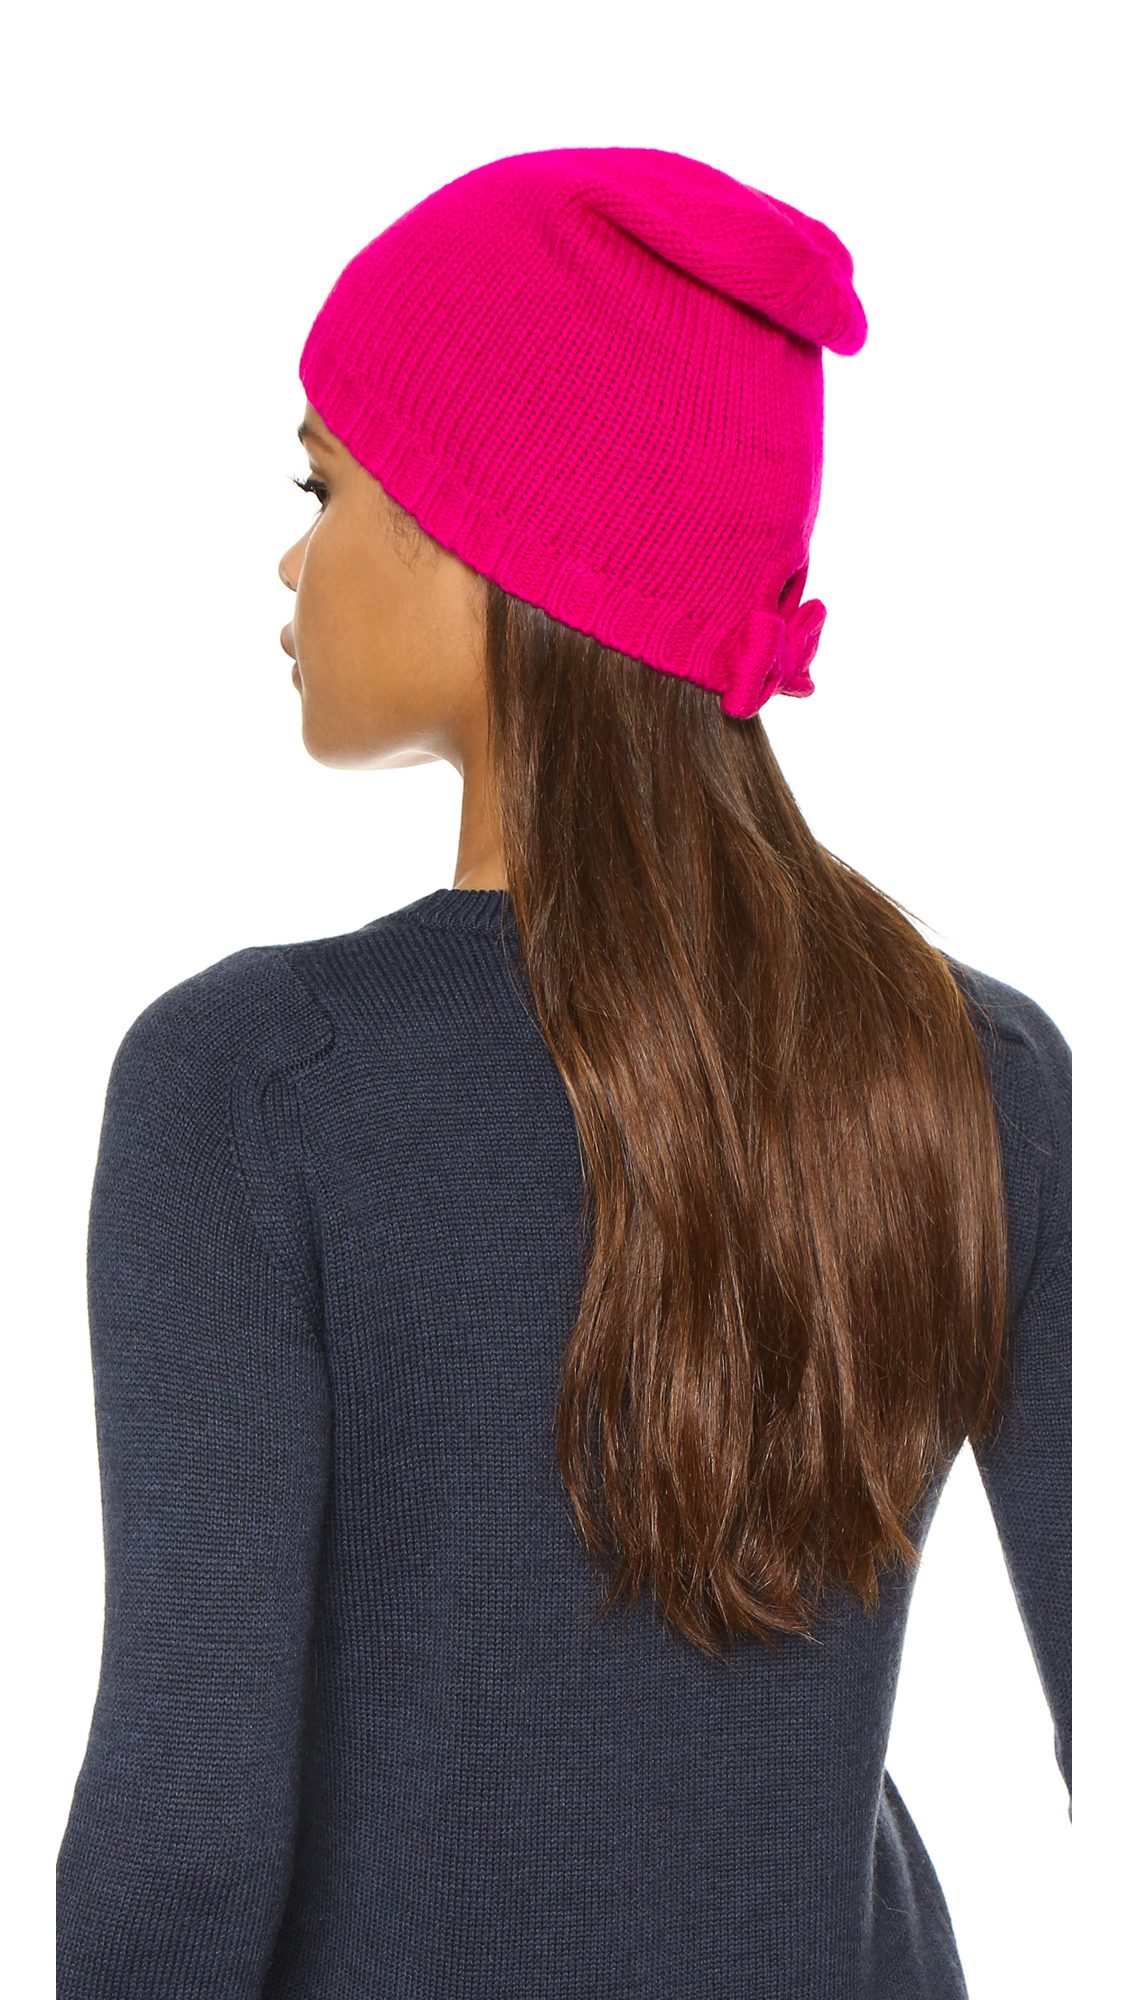 Lyst - Kate Spade New York Gathered Bow Beanie in Pink bc0f1ff96d8